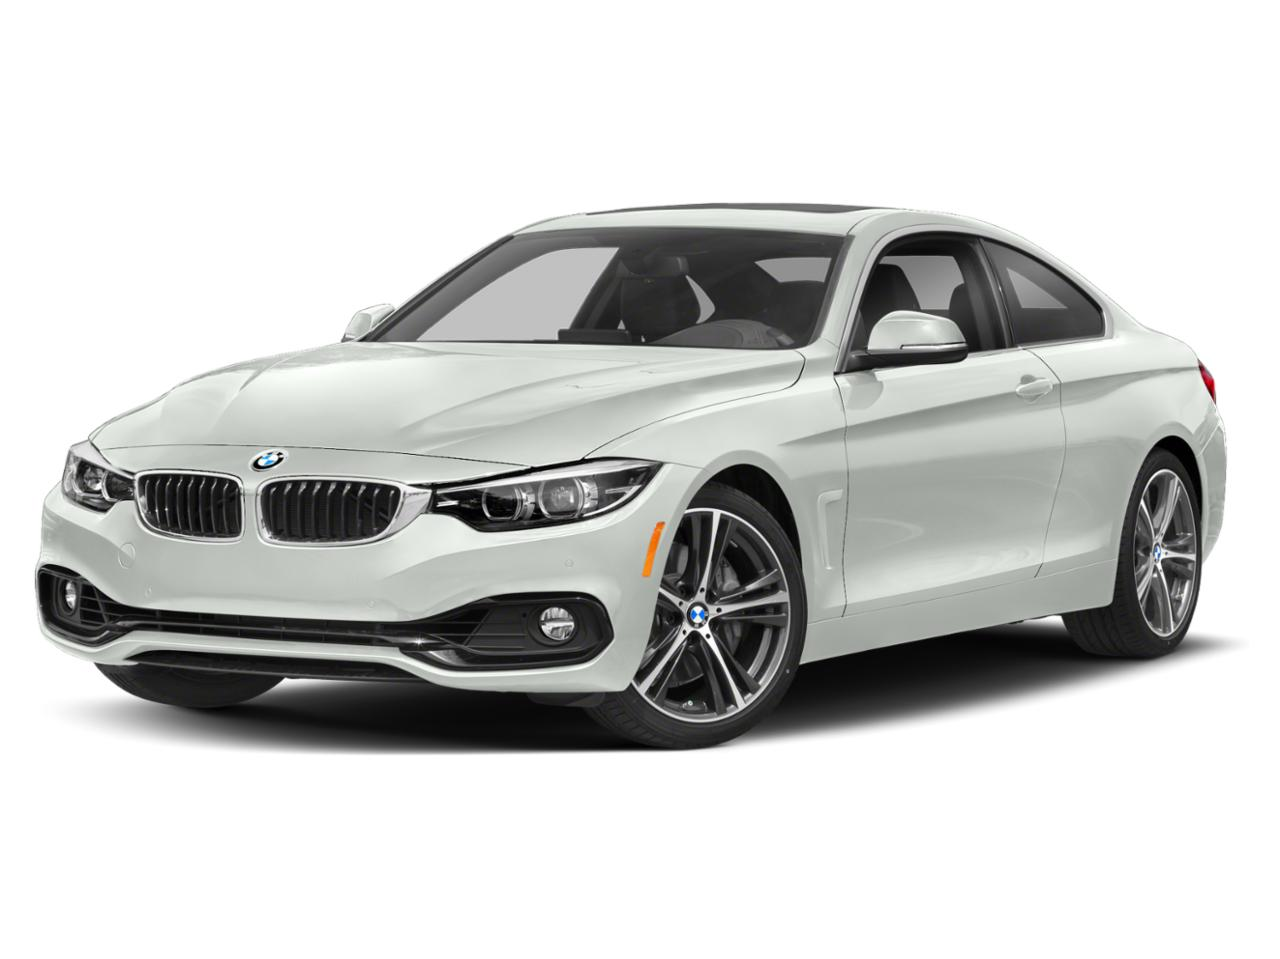 2018 BMW 440i xDrive Vehicle Photo in Spokane, WA 99207